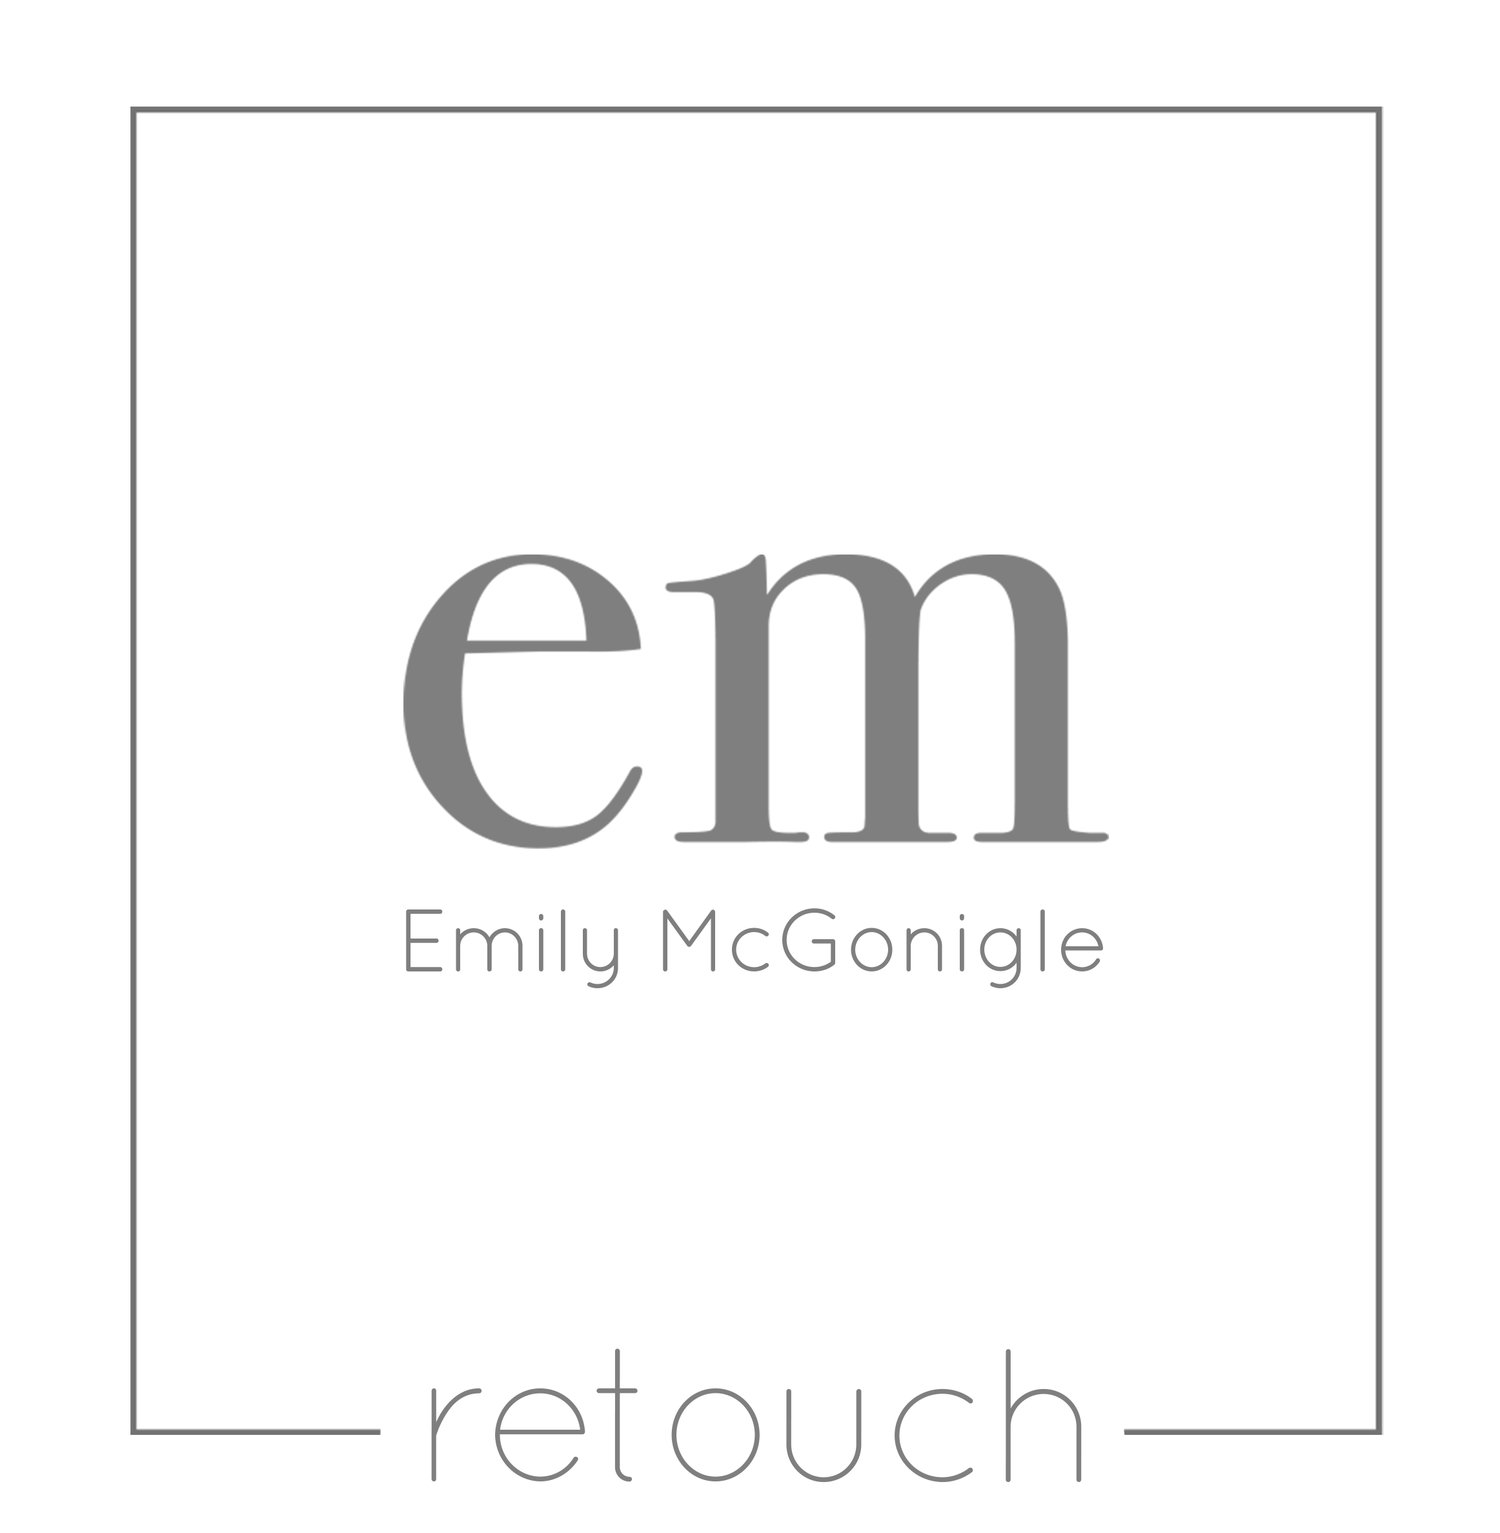 Emily McGonigle Retouch